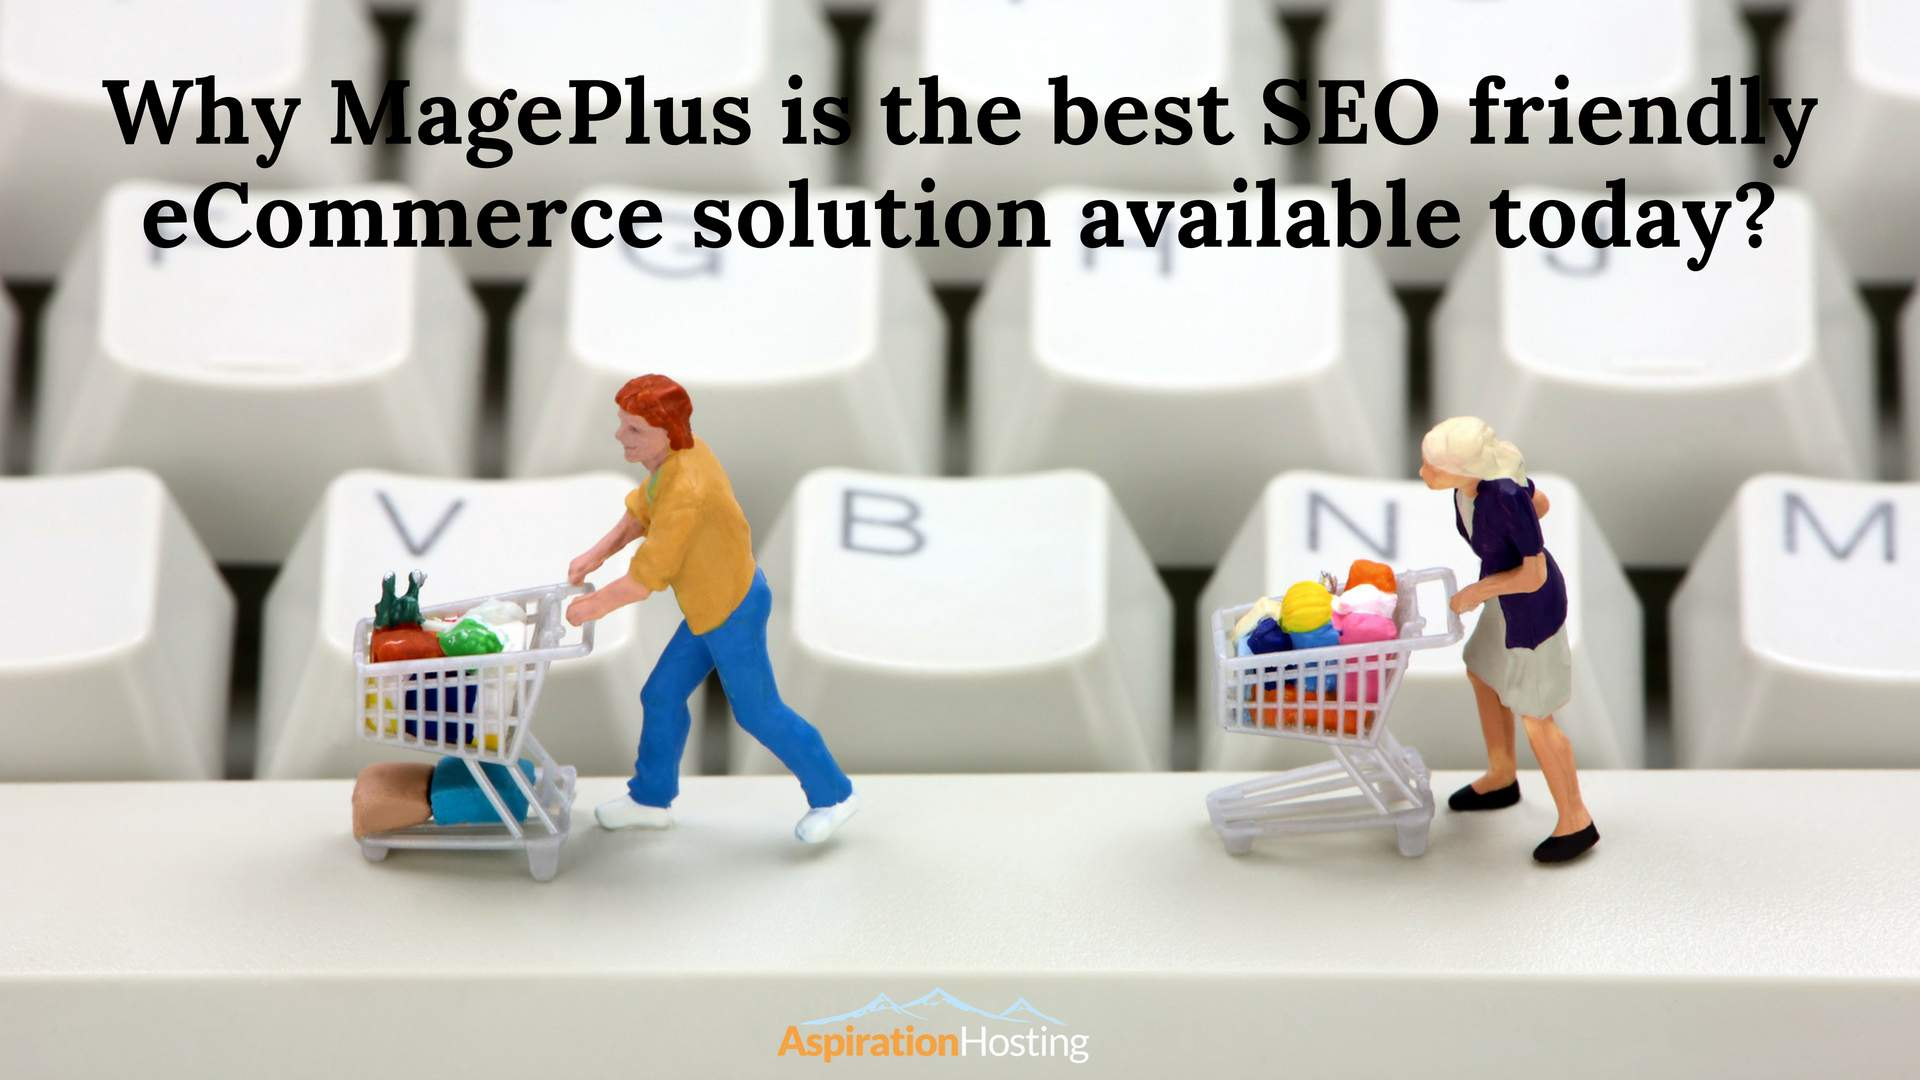 SEO friendly eCommerce